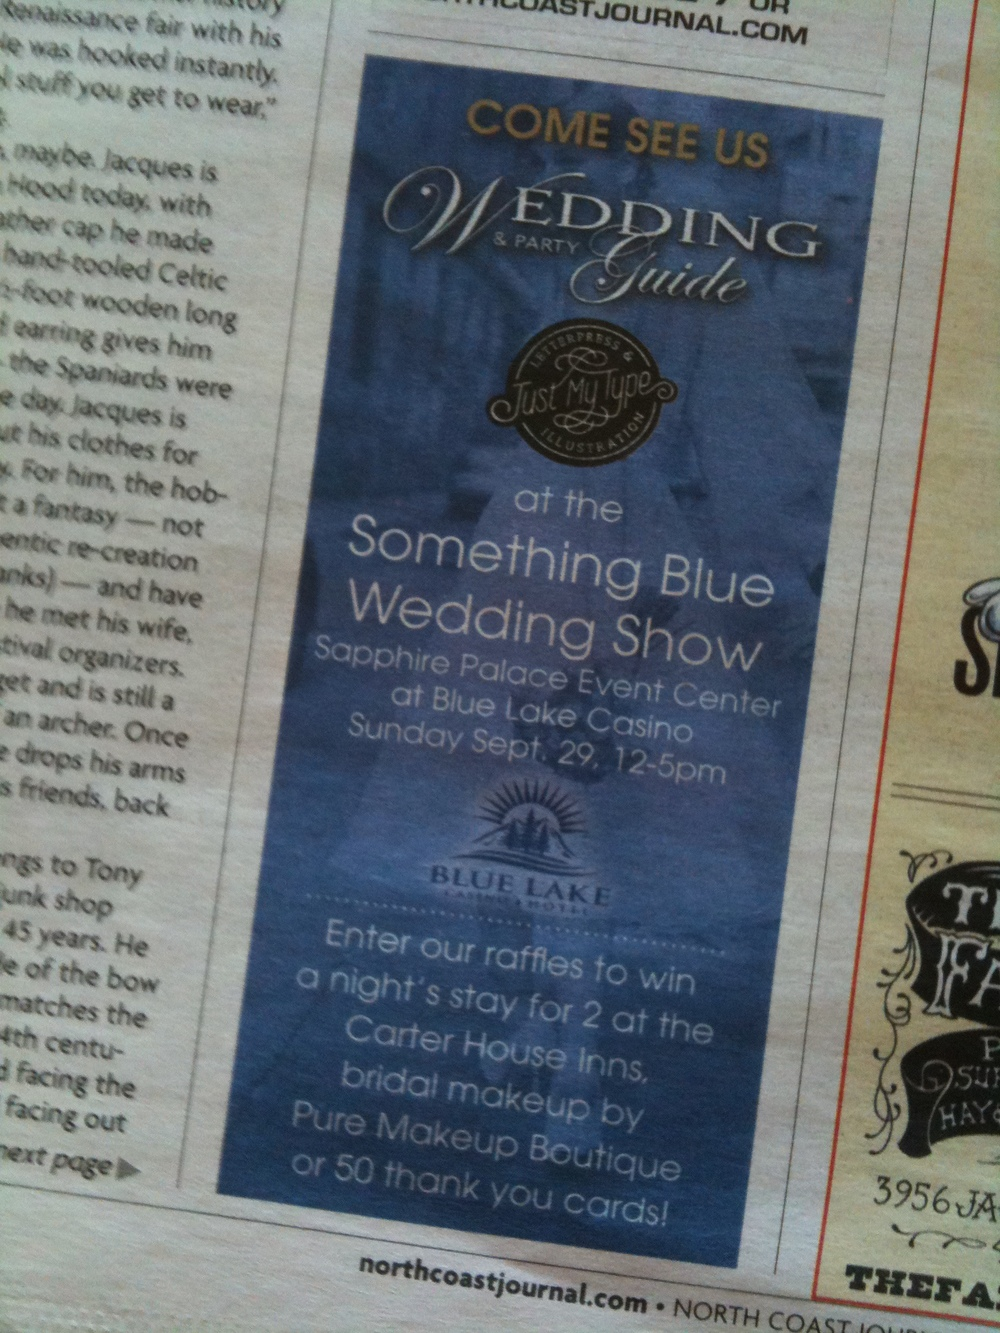 My joint ad with the Wedding & Party Guide in the Sept. 26, 2013 North Coast Journal.